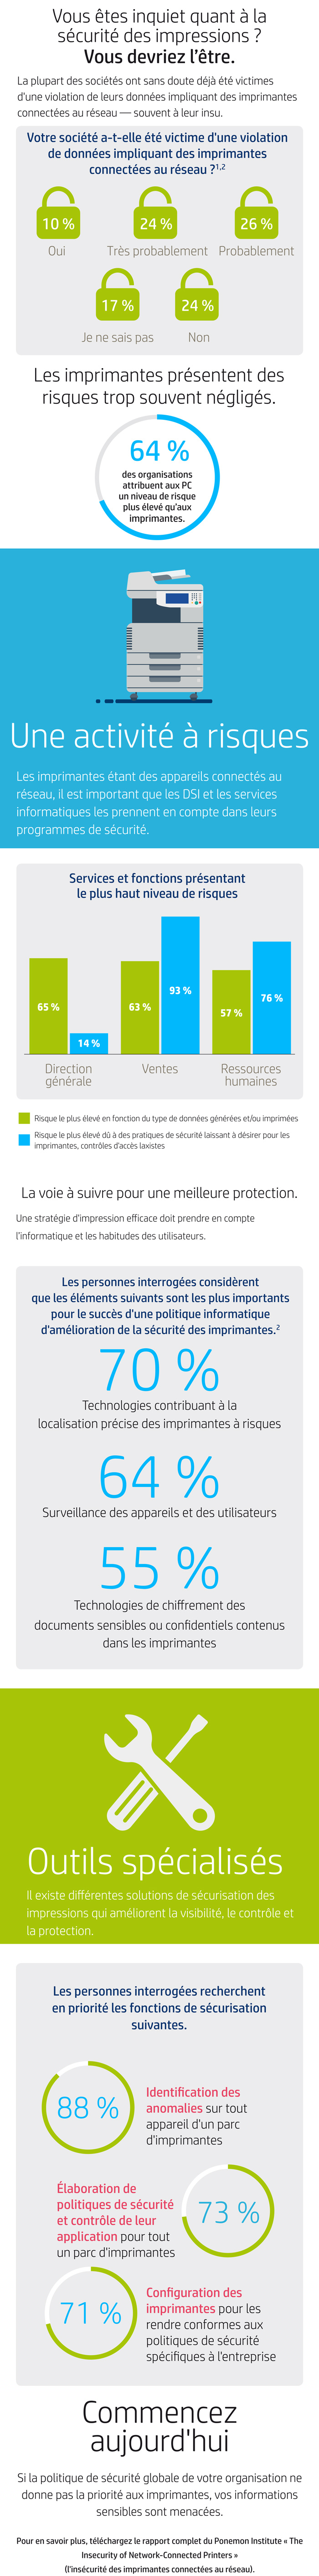 part2_AMENDED2-HP10020_Printer-Security_Infographic_11.jpg